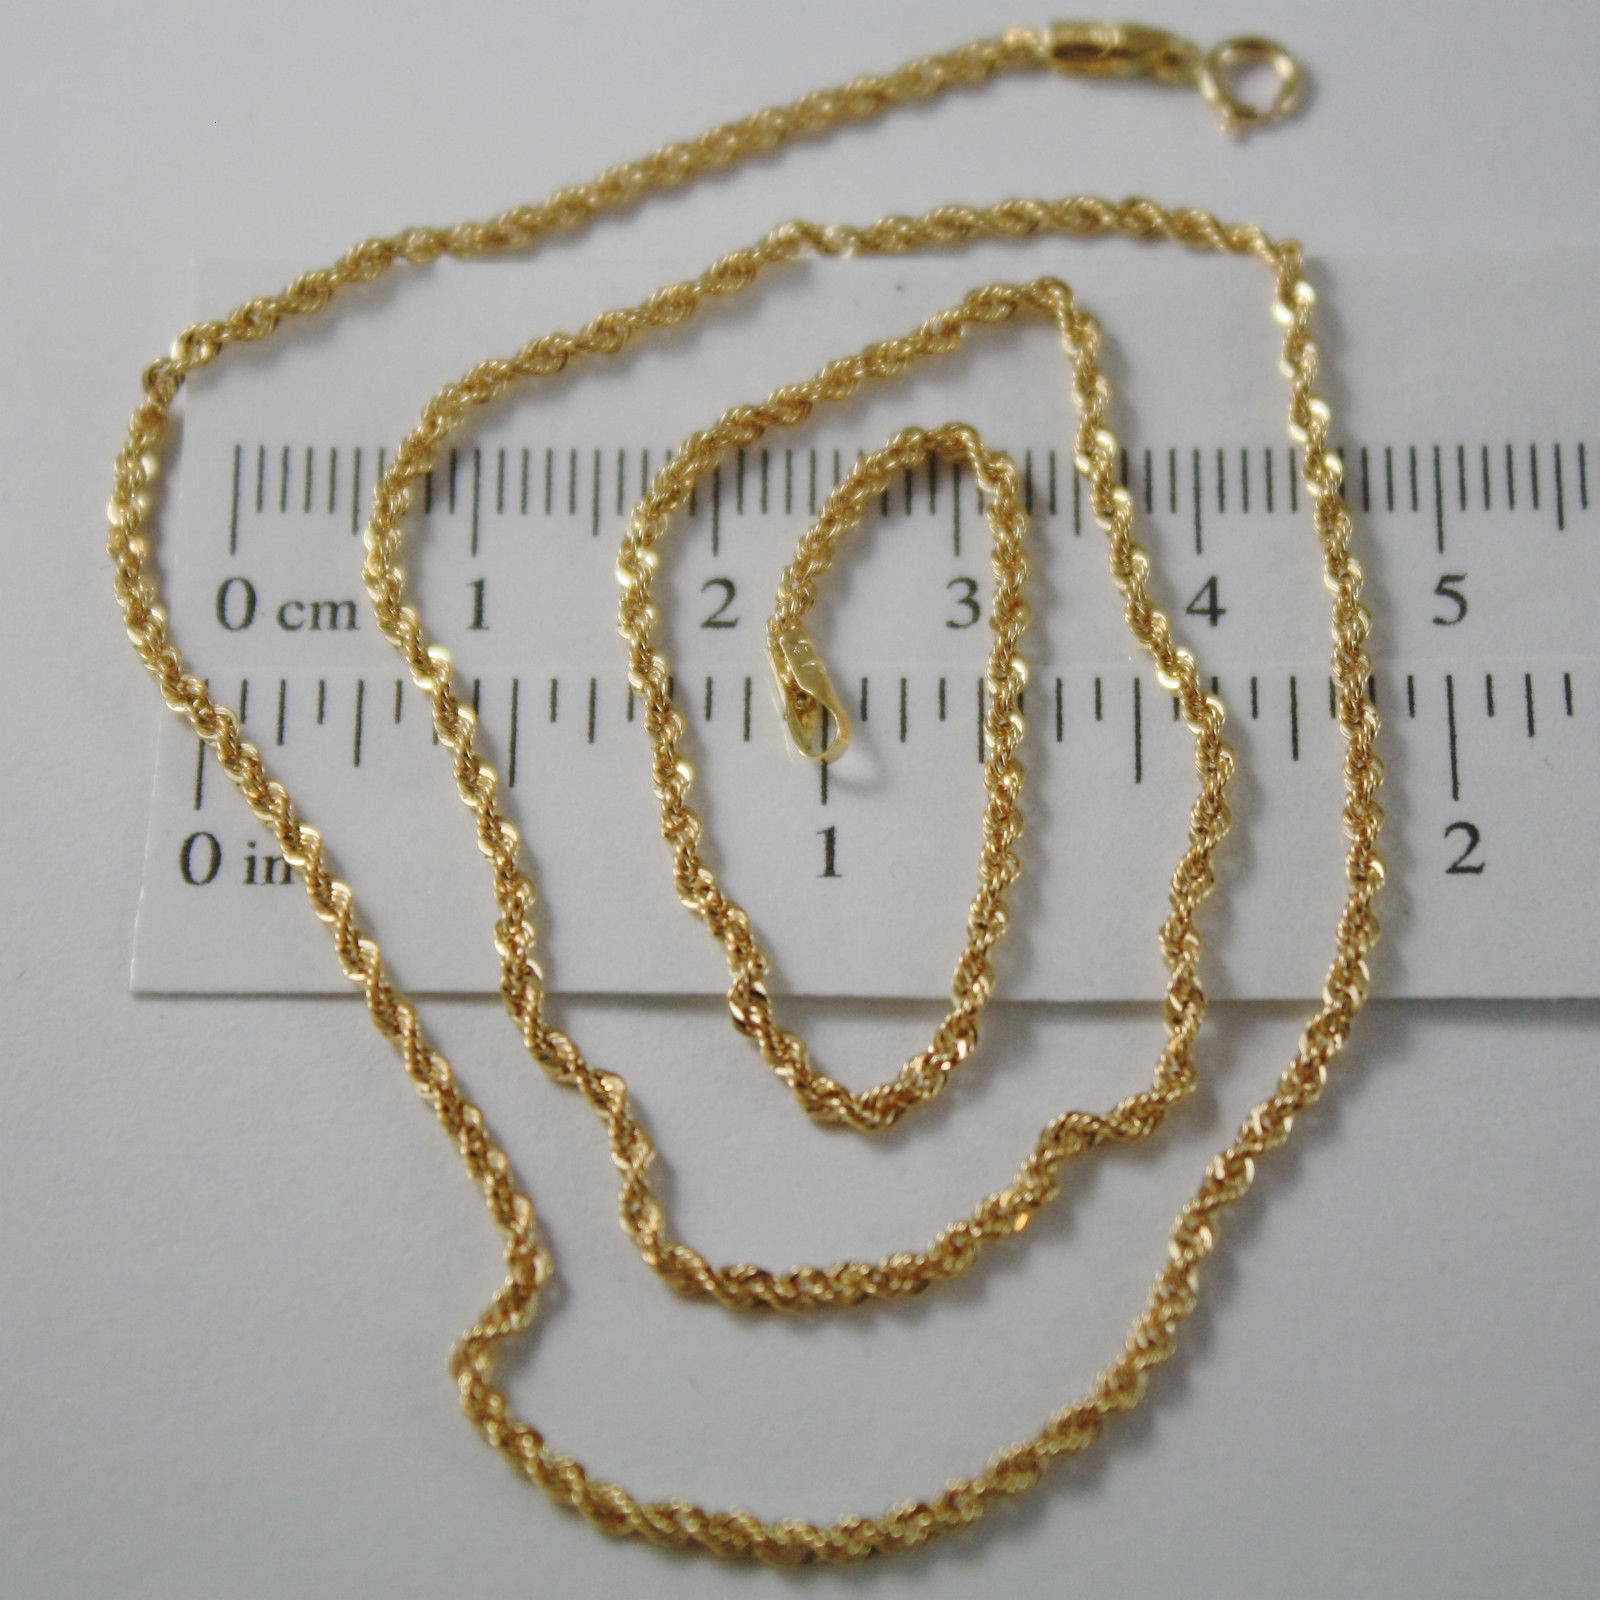 18K YELLOW GOLD CHAIN NECKLACE, BRAID ROPE 20 INCHES, 50 CM LONG, MADE IN ITALY